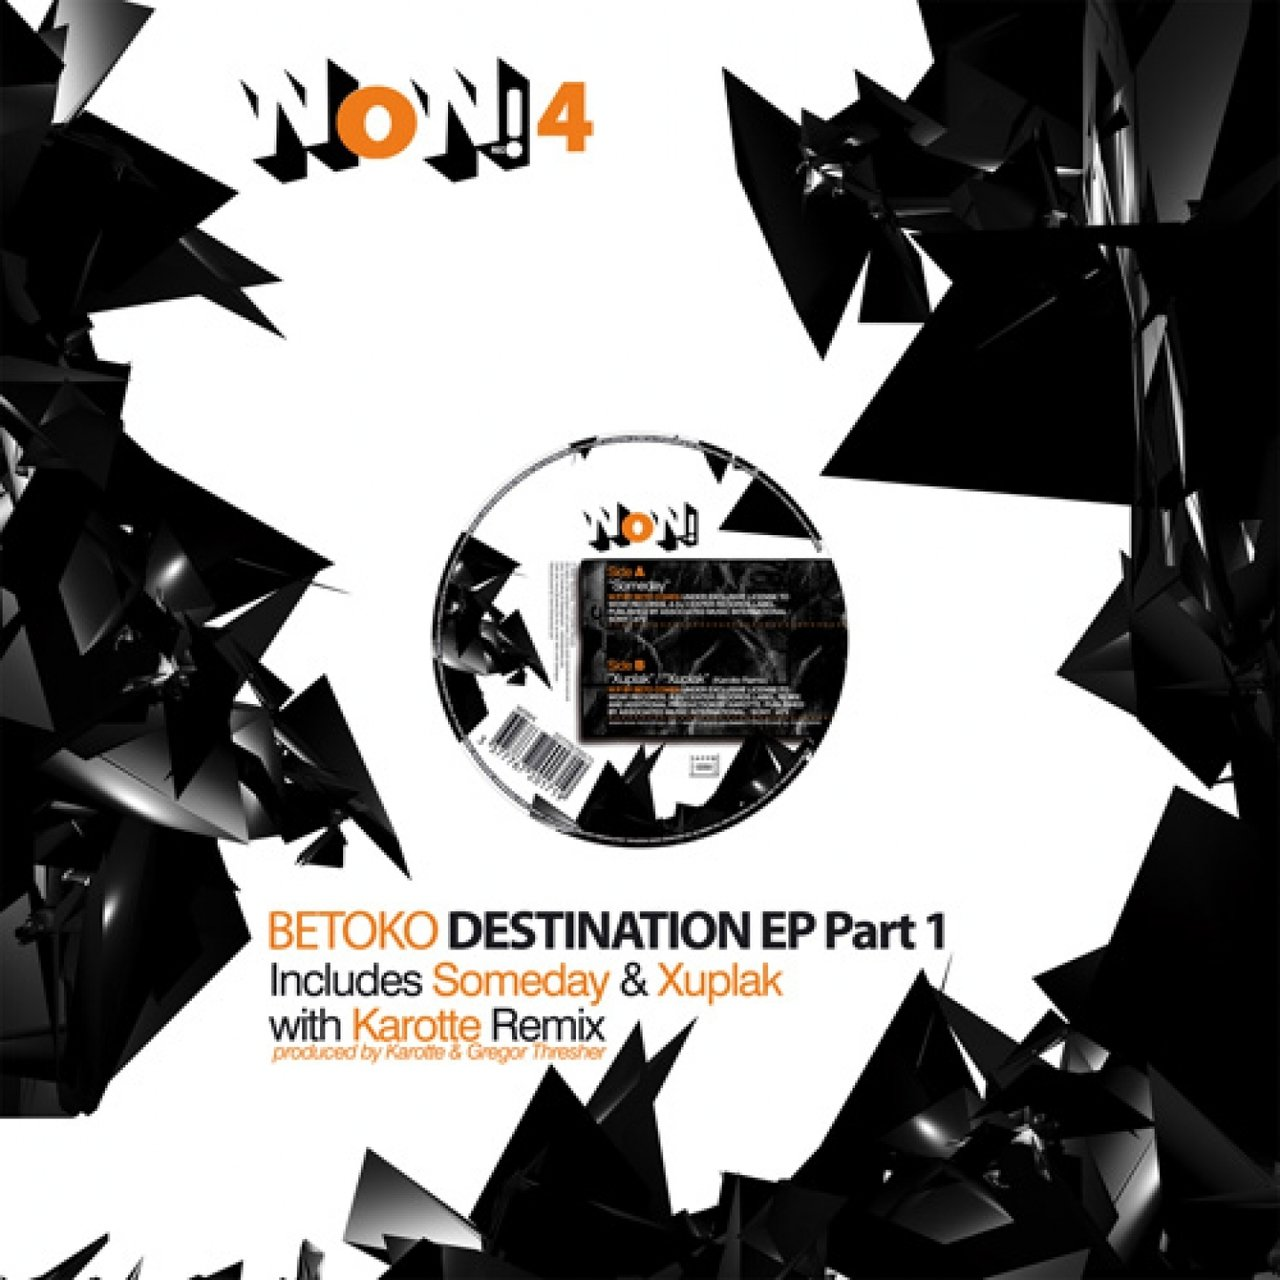 Destination Ep Part 1